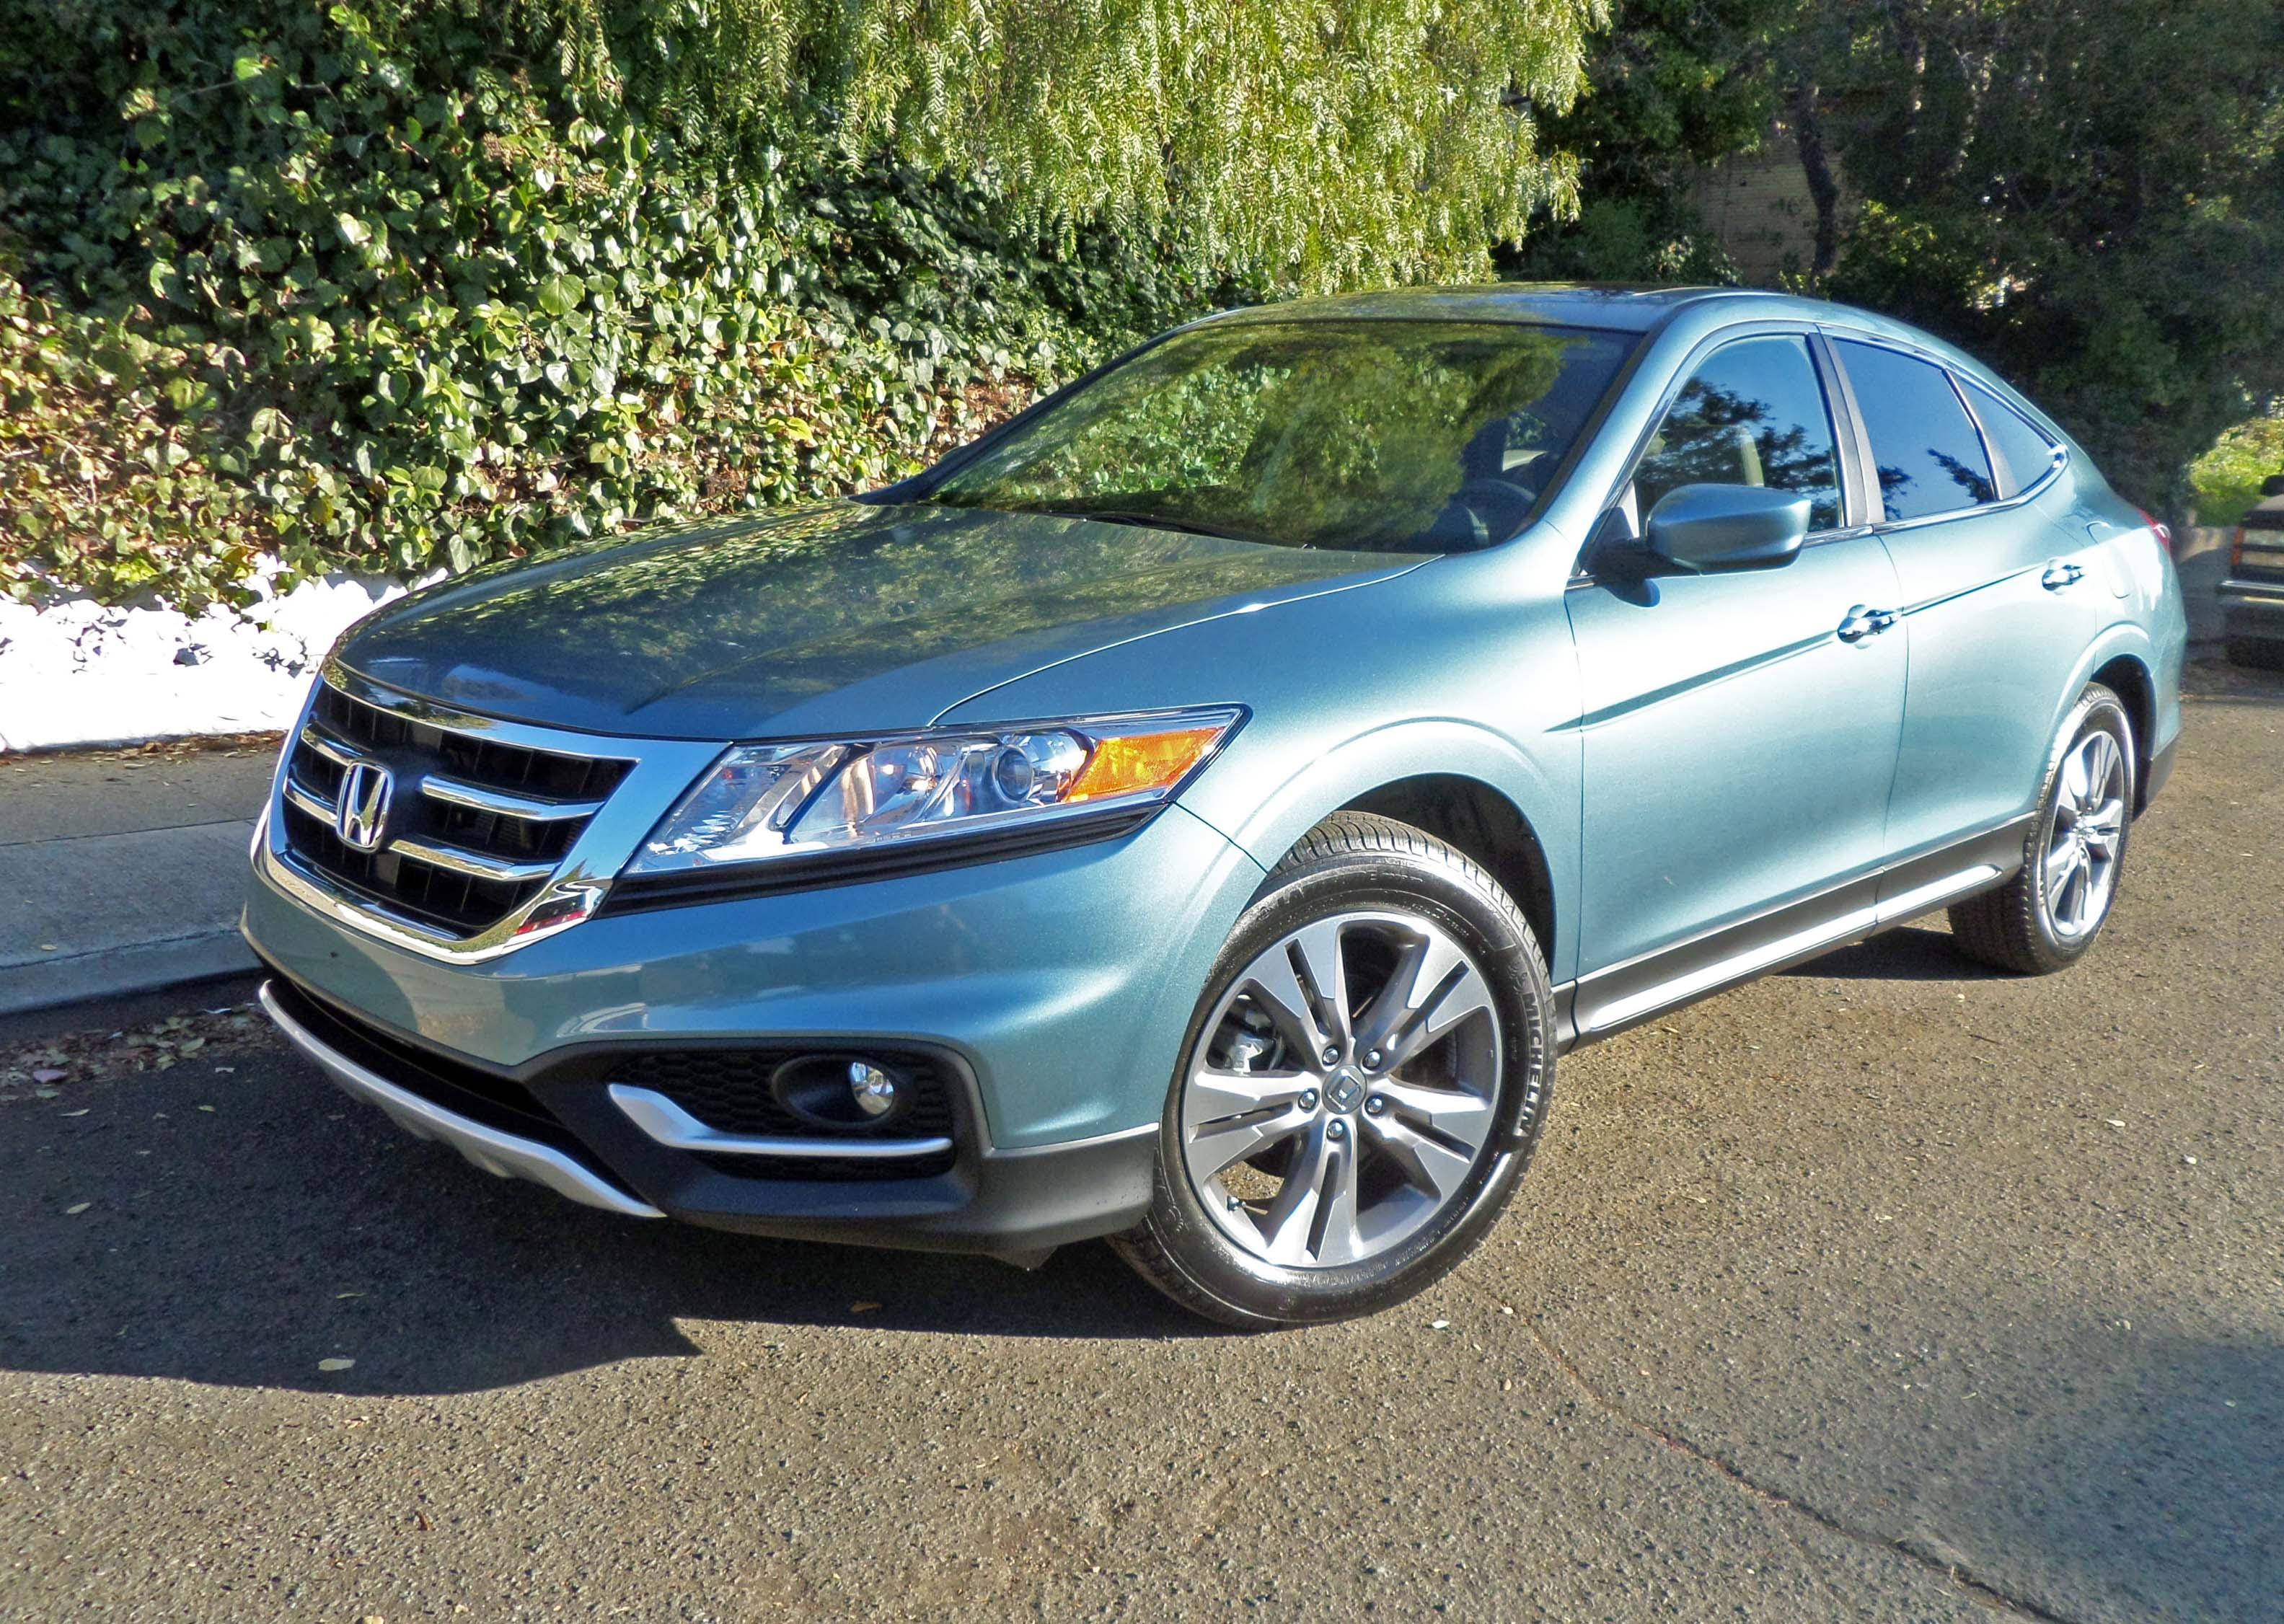 crosstour lsf auto drive camera navi test honda ex samsung tets our pictures l expert used awd